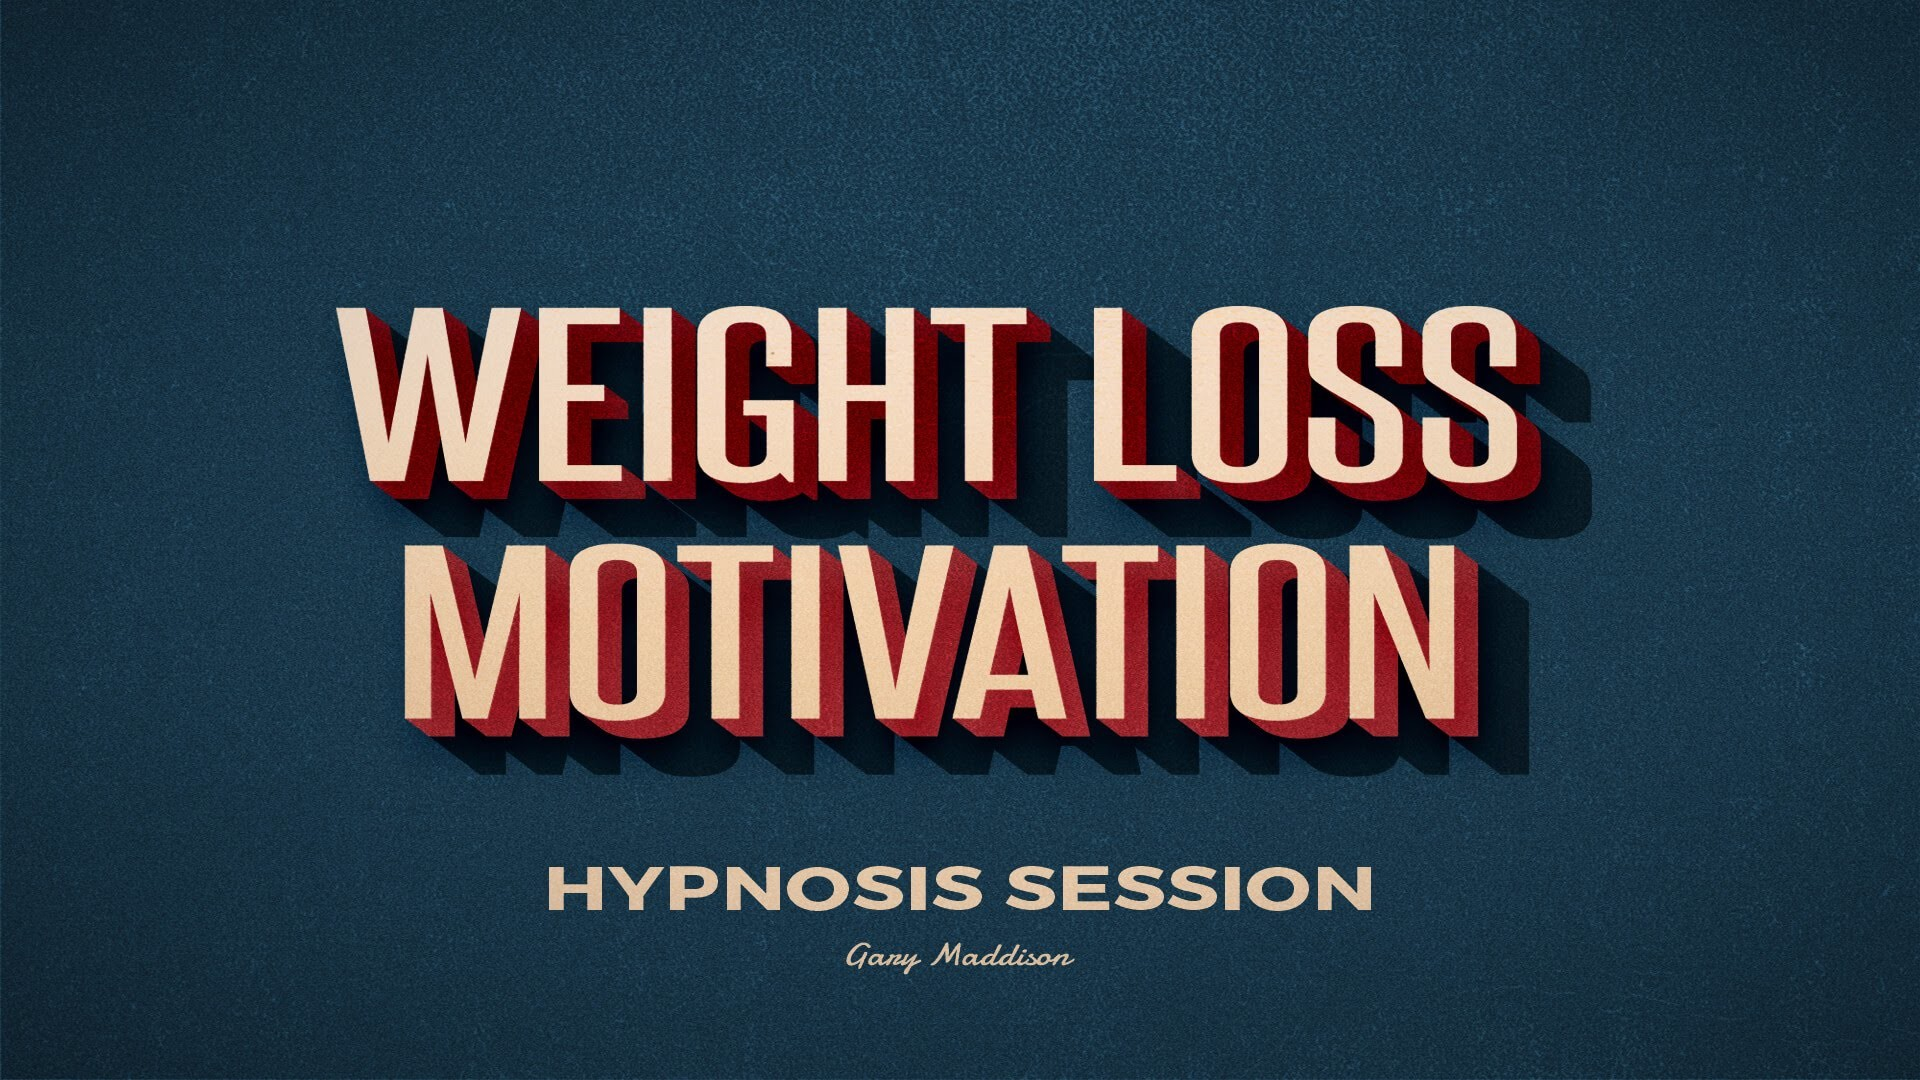 Weight Loss Motivation Wallpaper (70+ images)